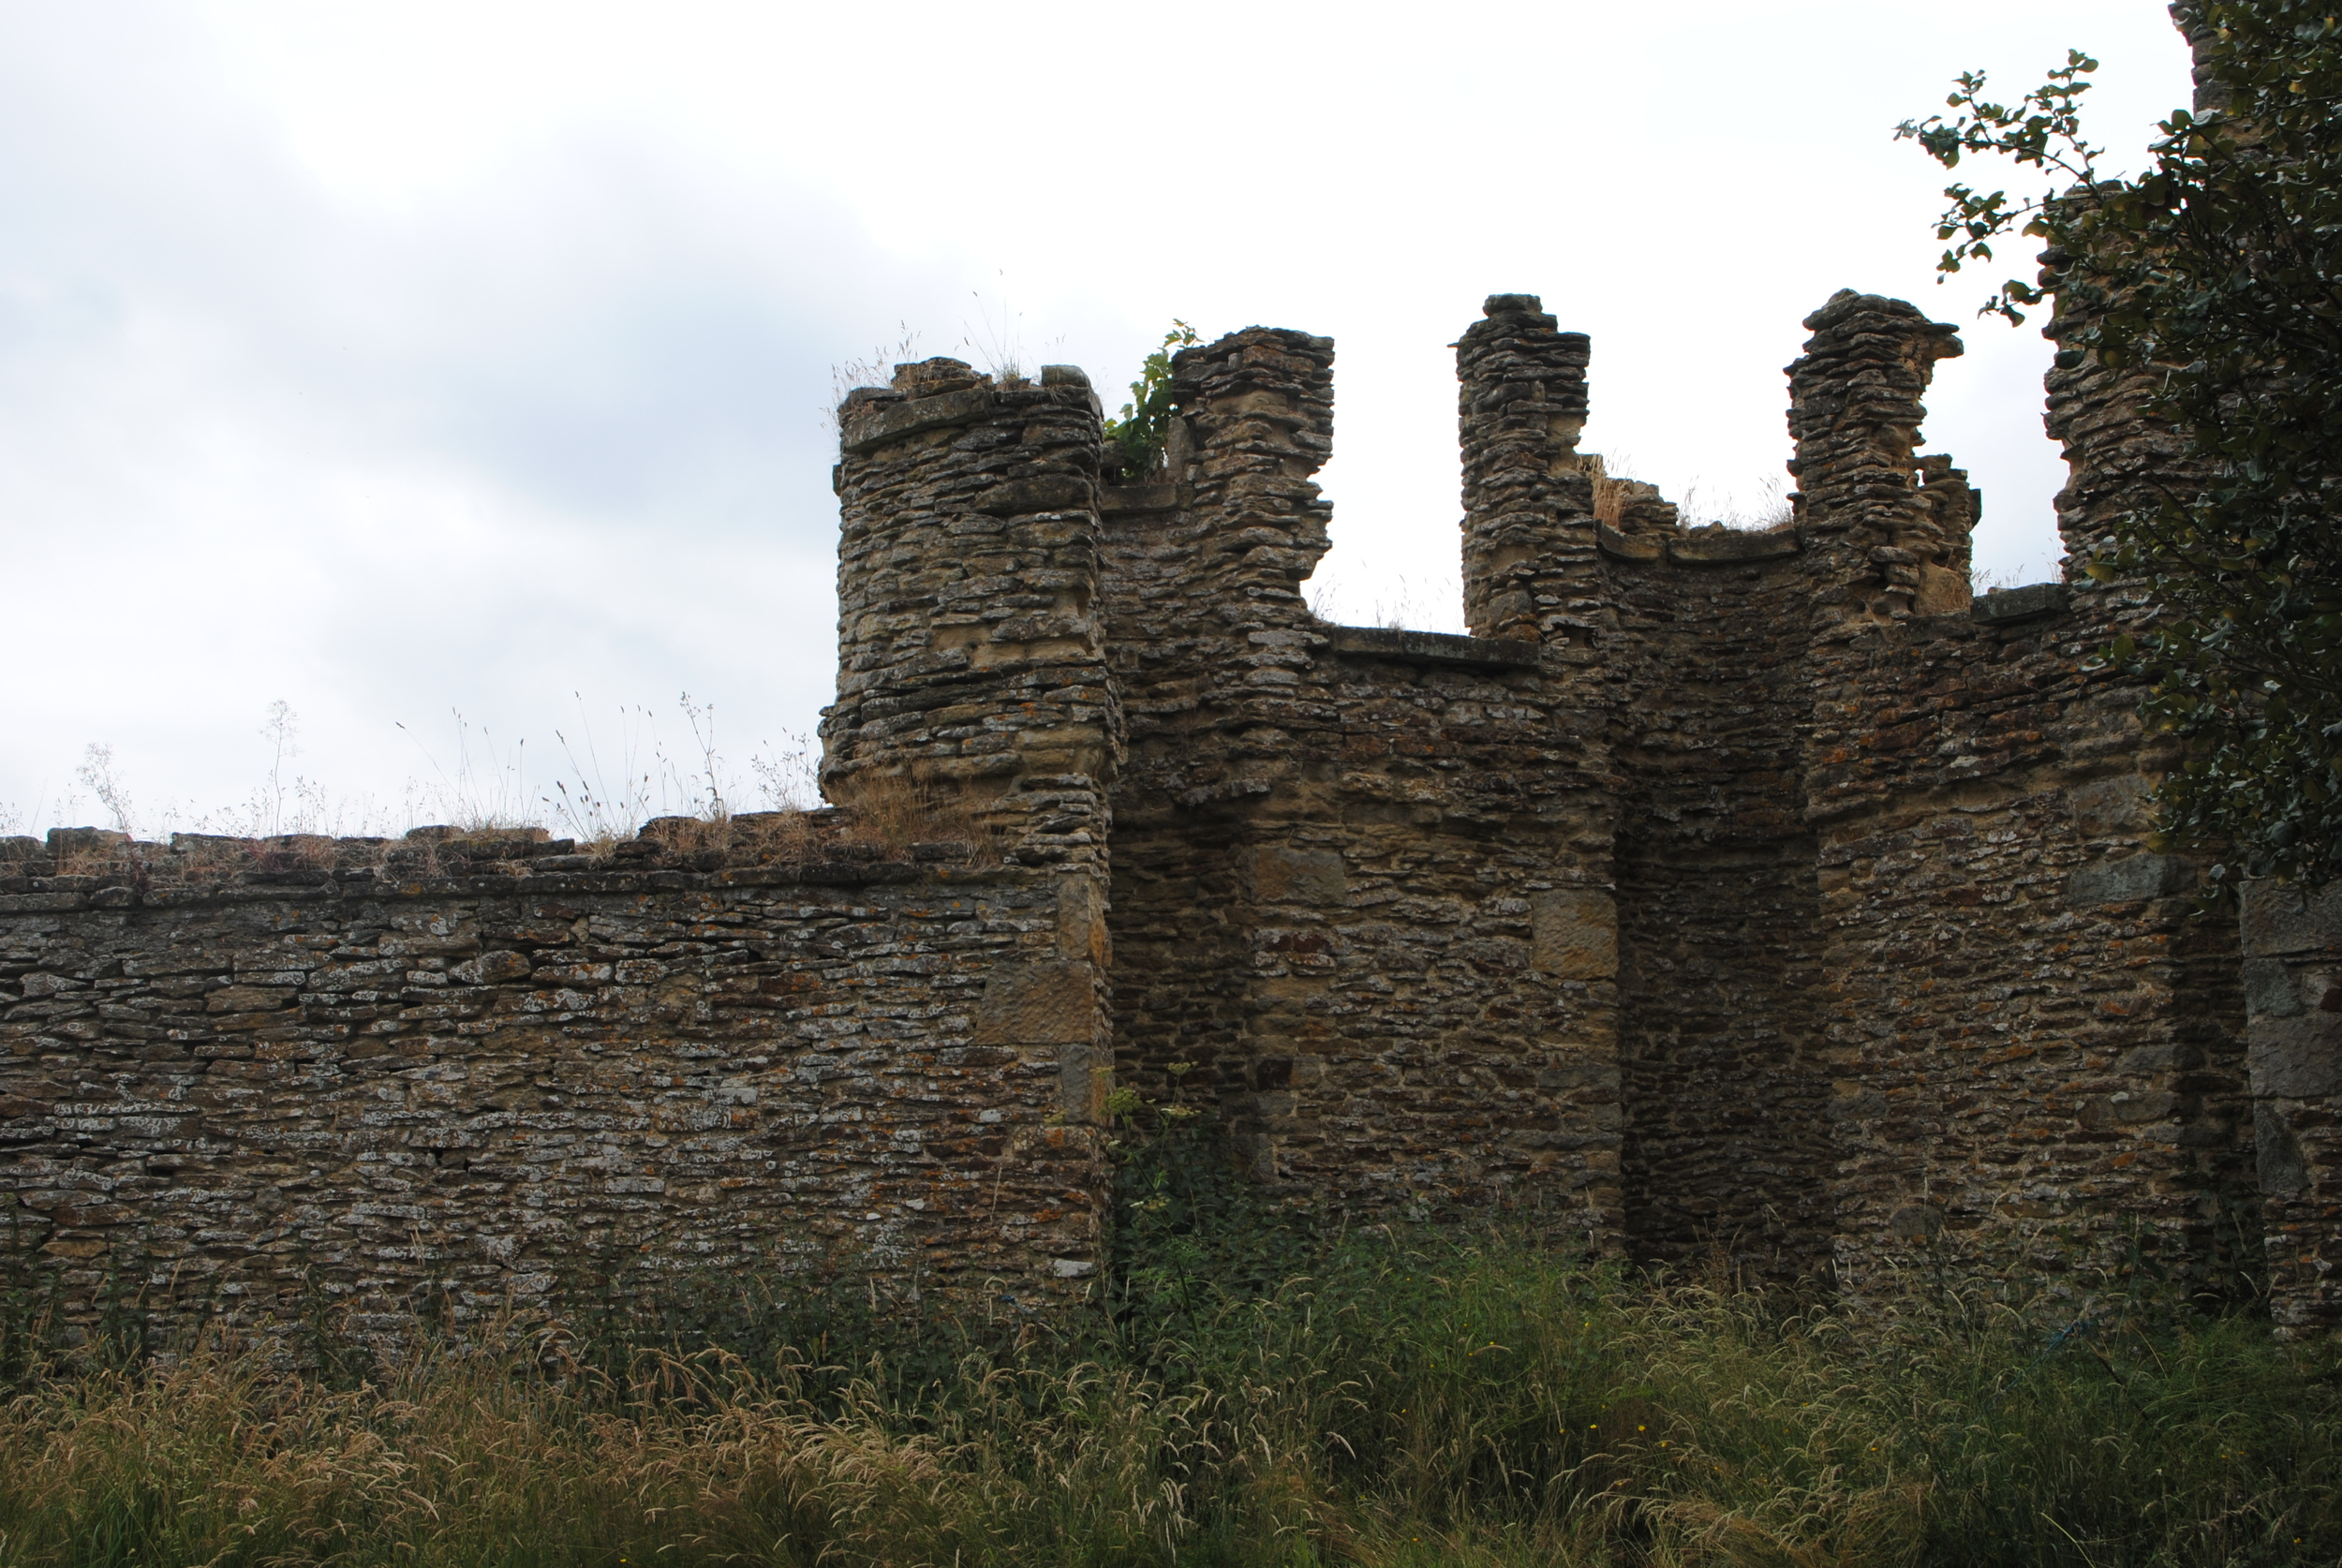 The crumbling walls along the southern perimeter add a bit of Gothic grandeur.